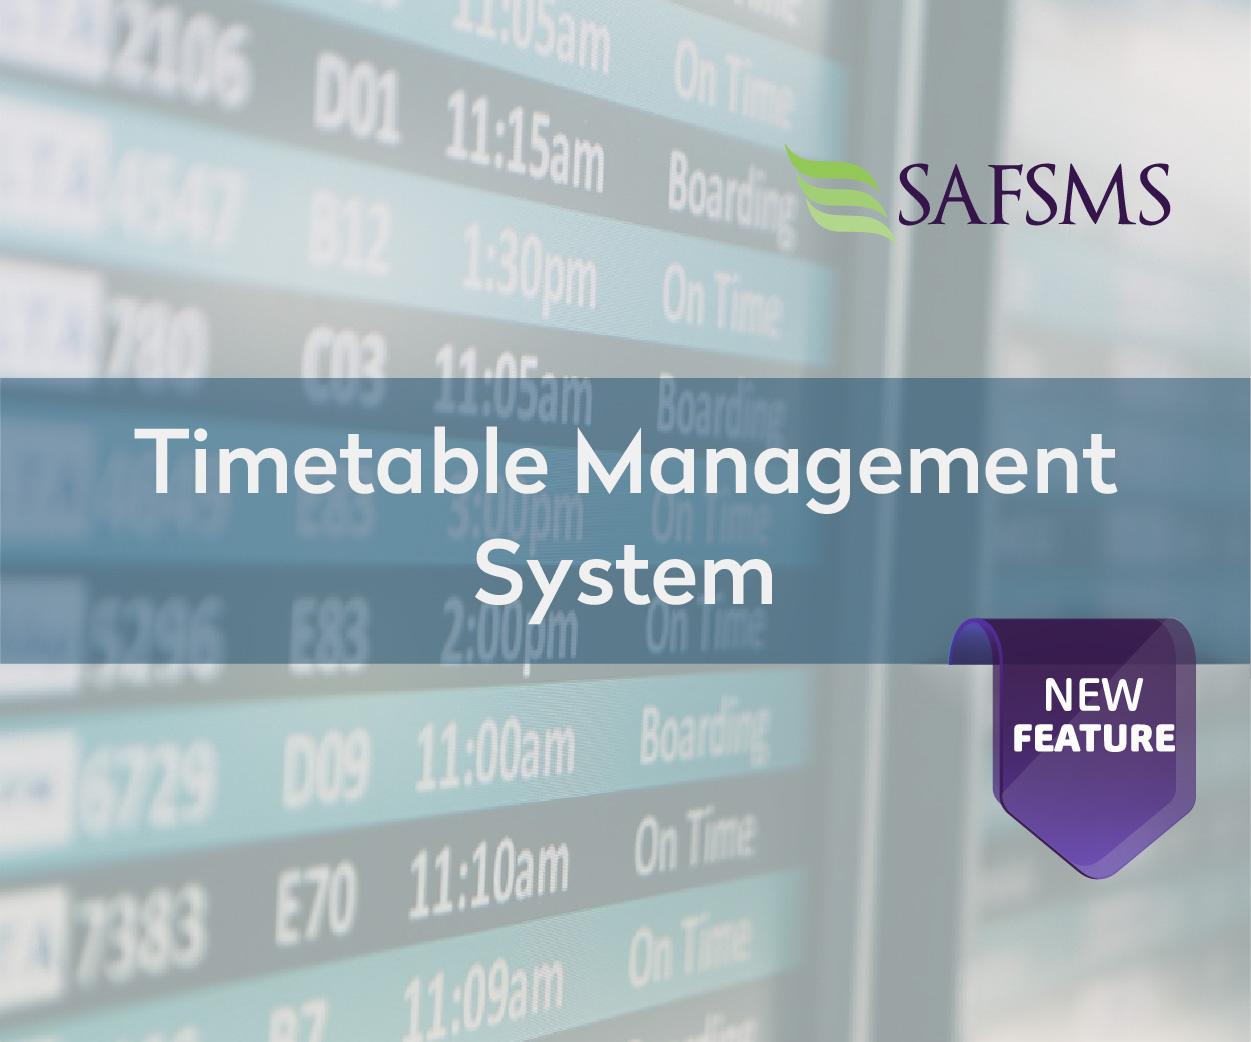 Introducing SAFSMS Timetable Feature